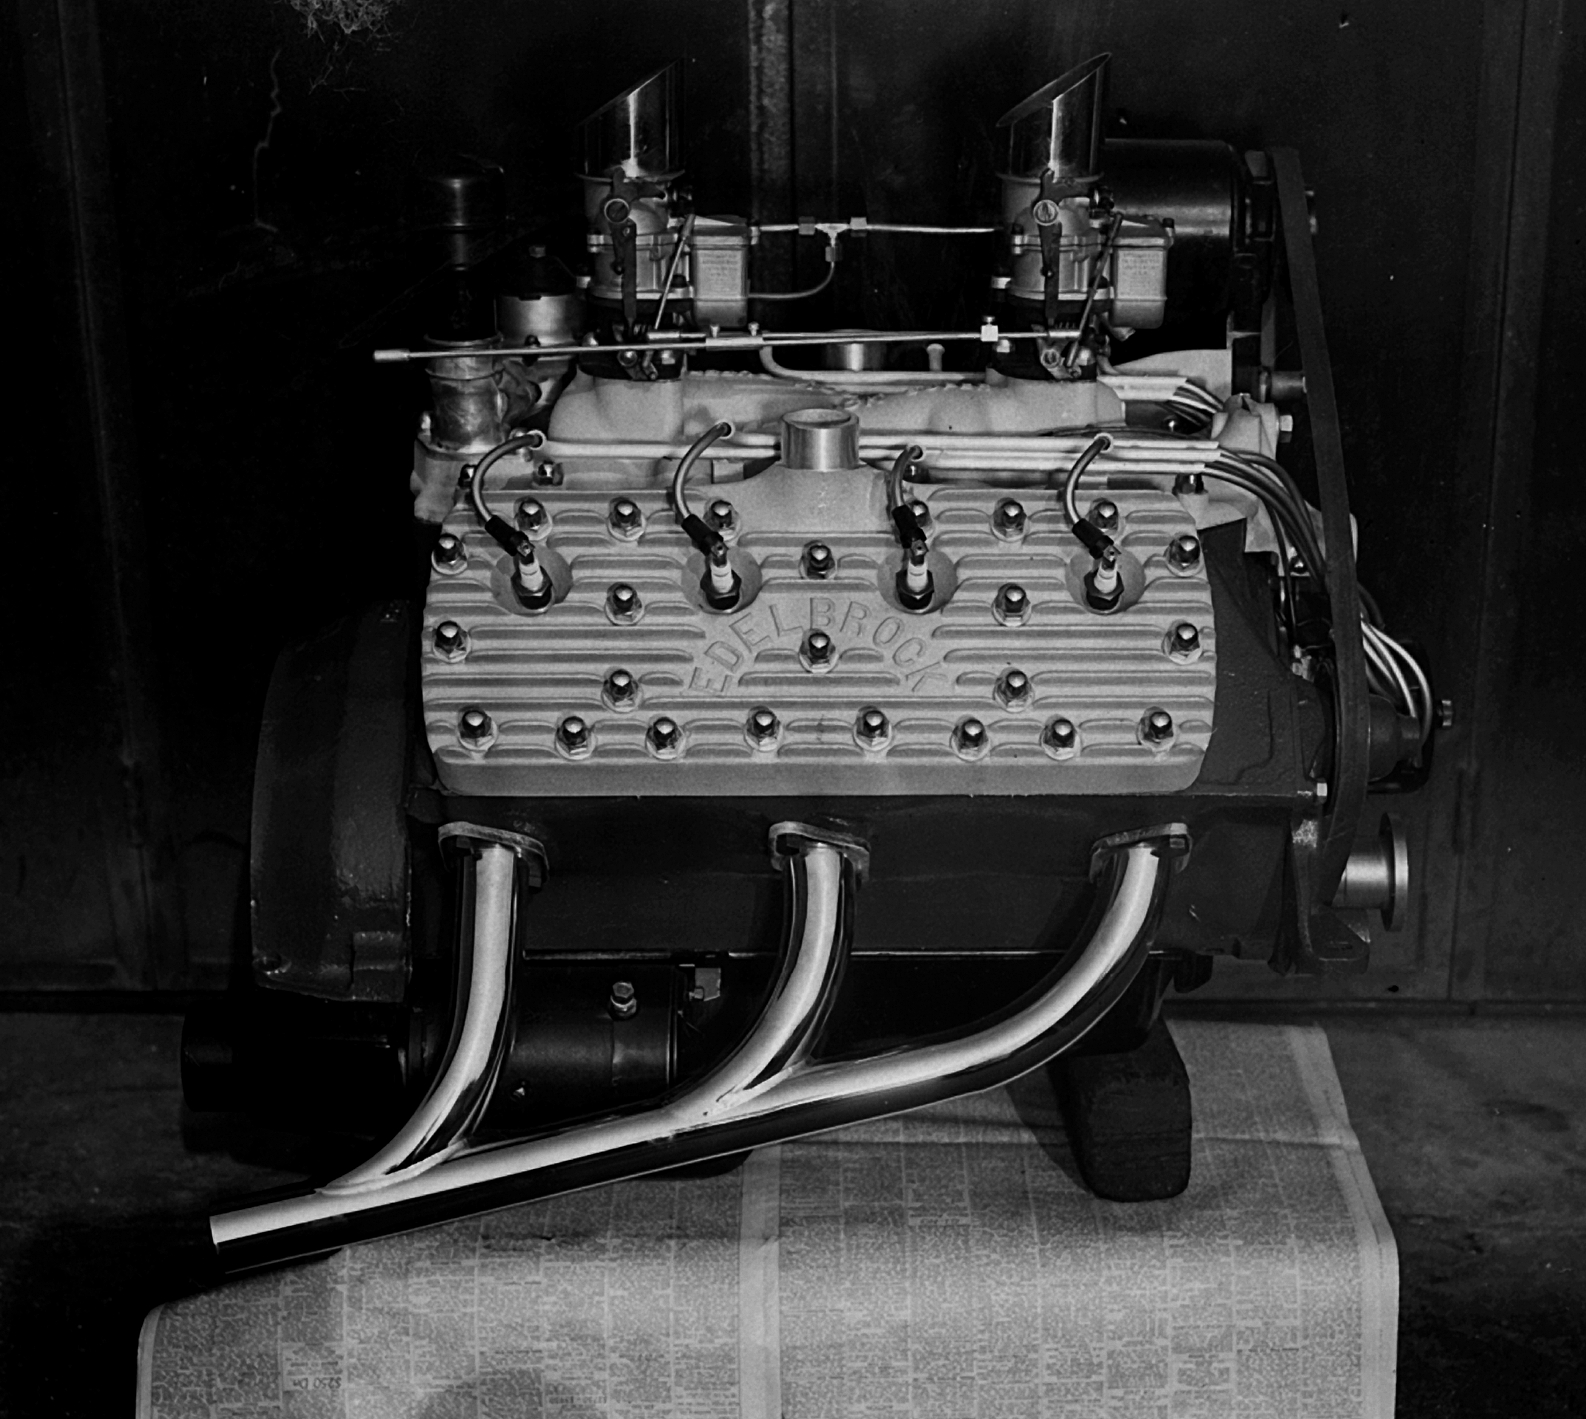 Ford Flathead V8 The Original Hot Rod Engine Onallcylinders